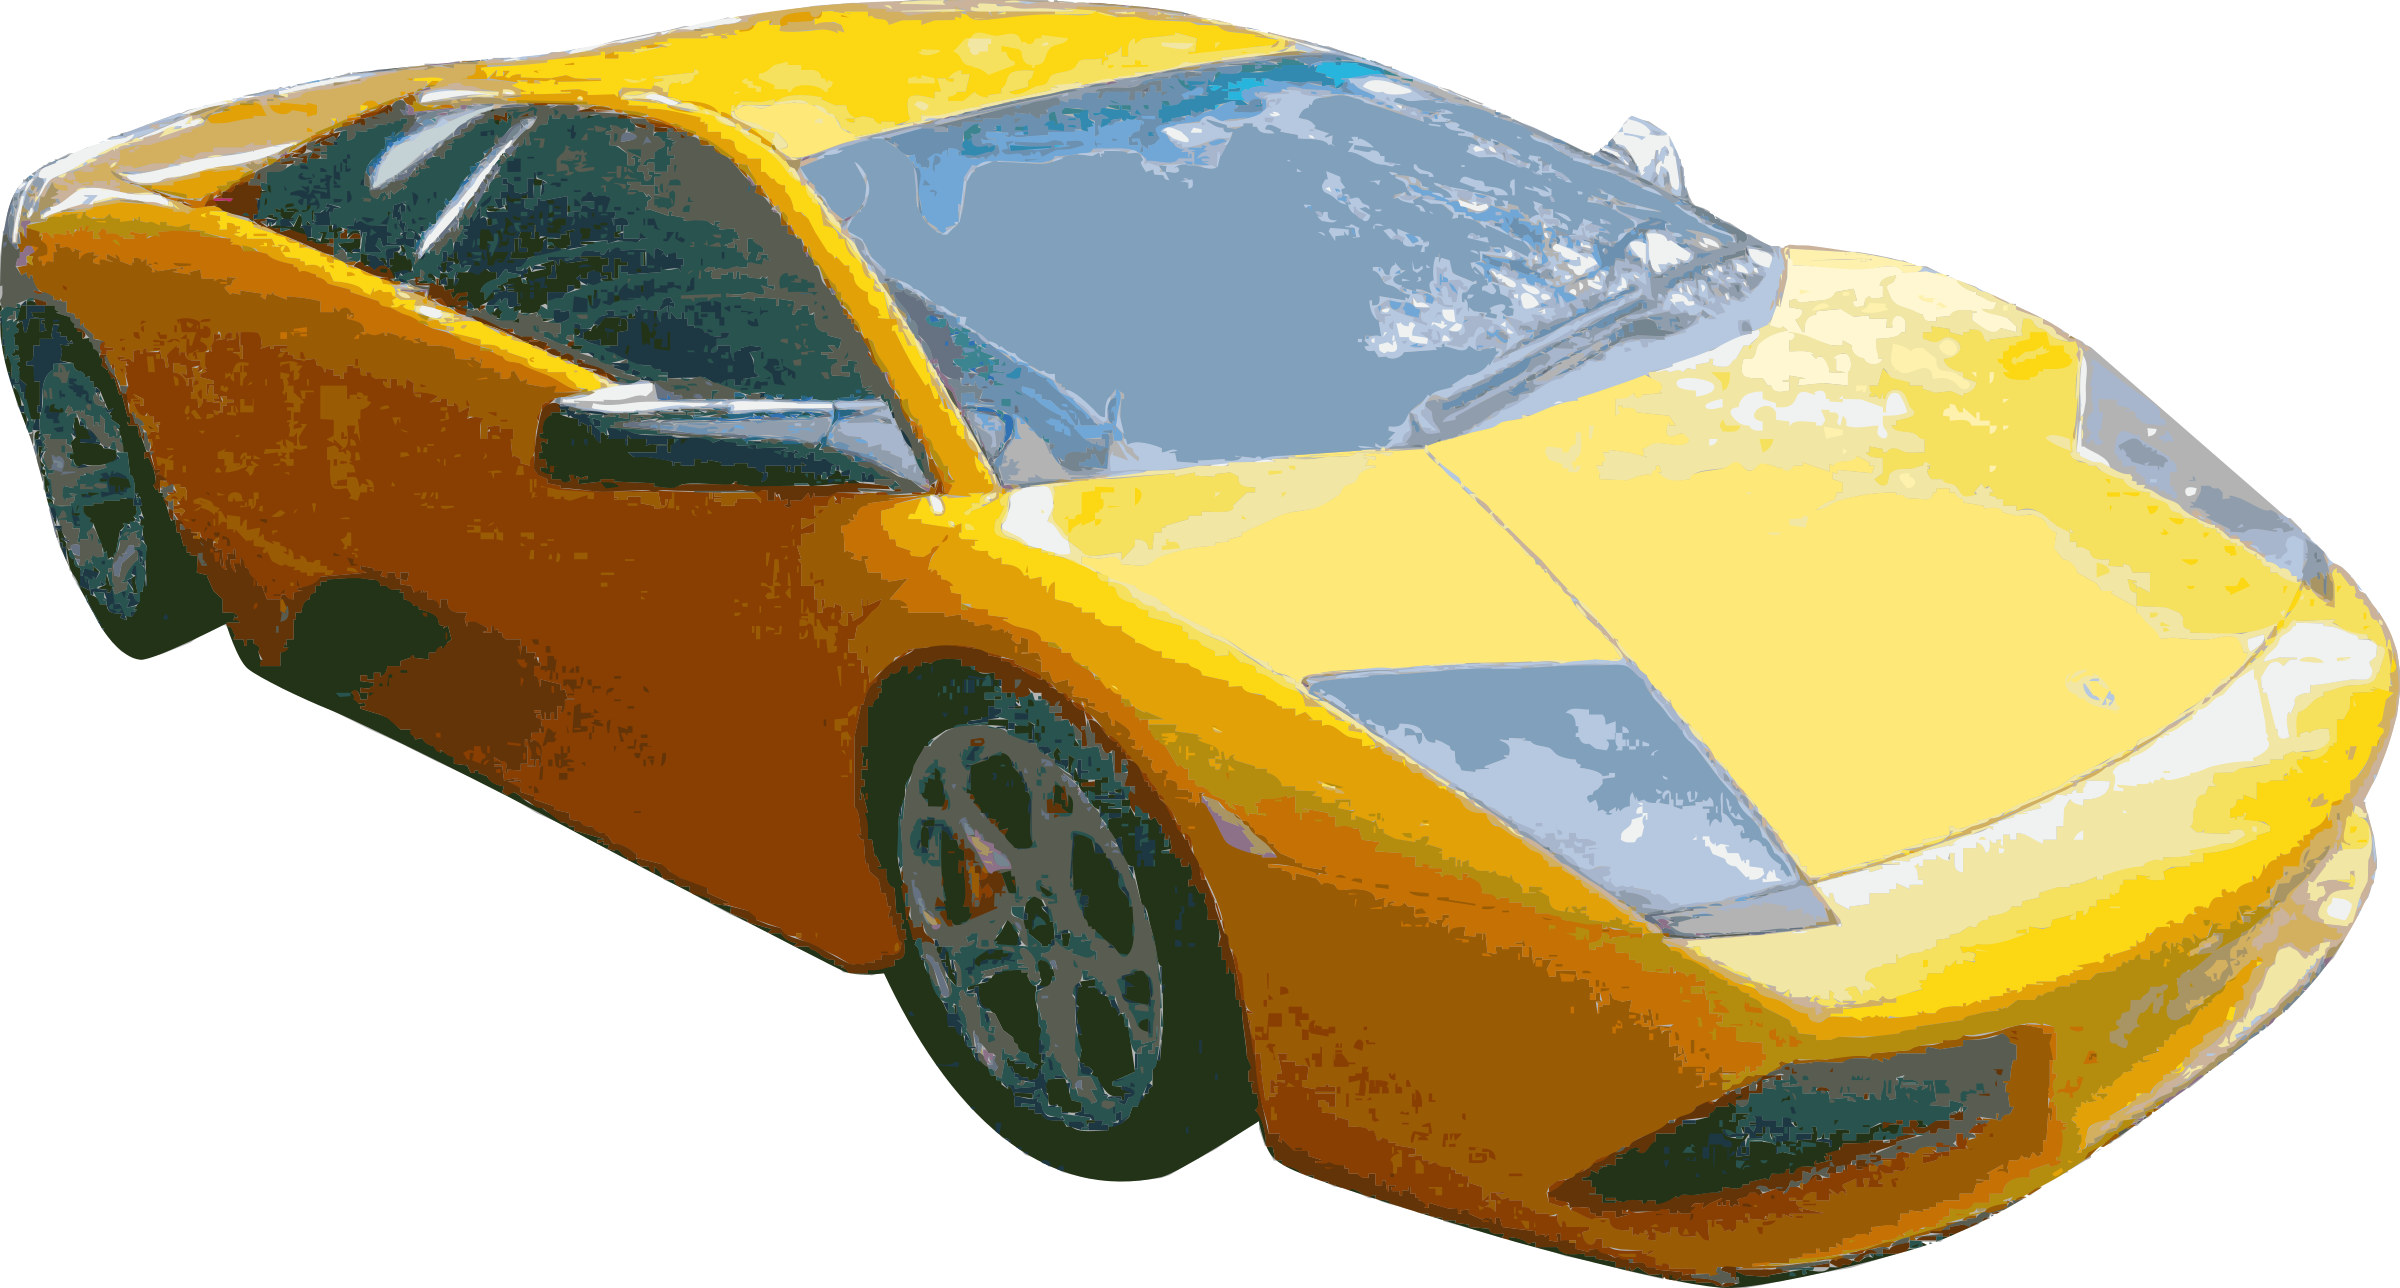 Sports Car Cutout remix by rdevries